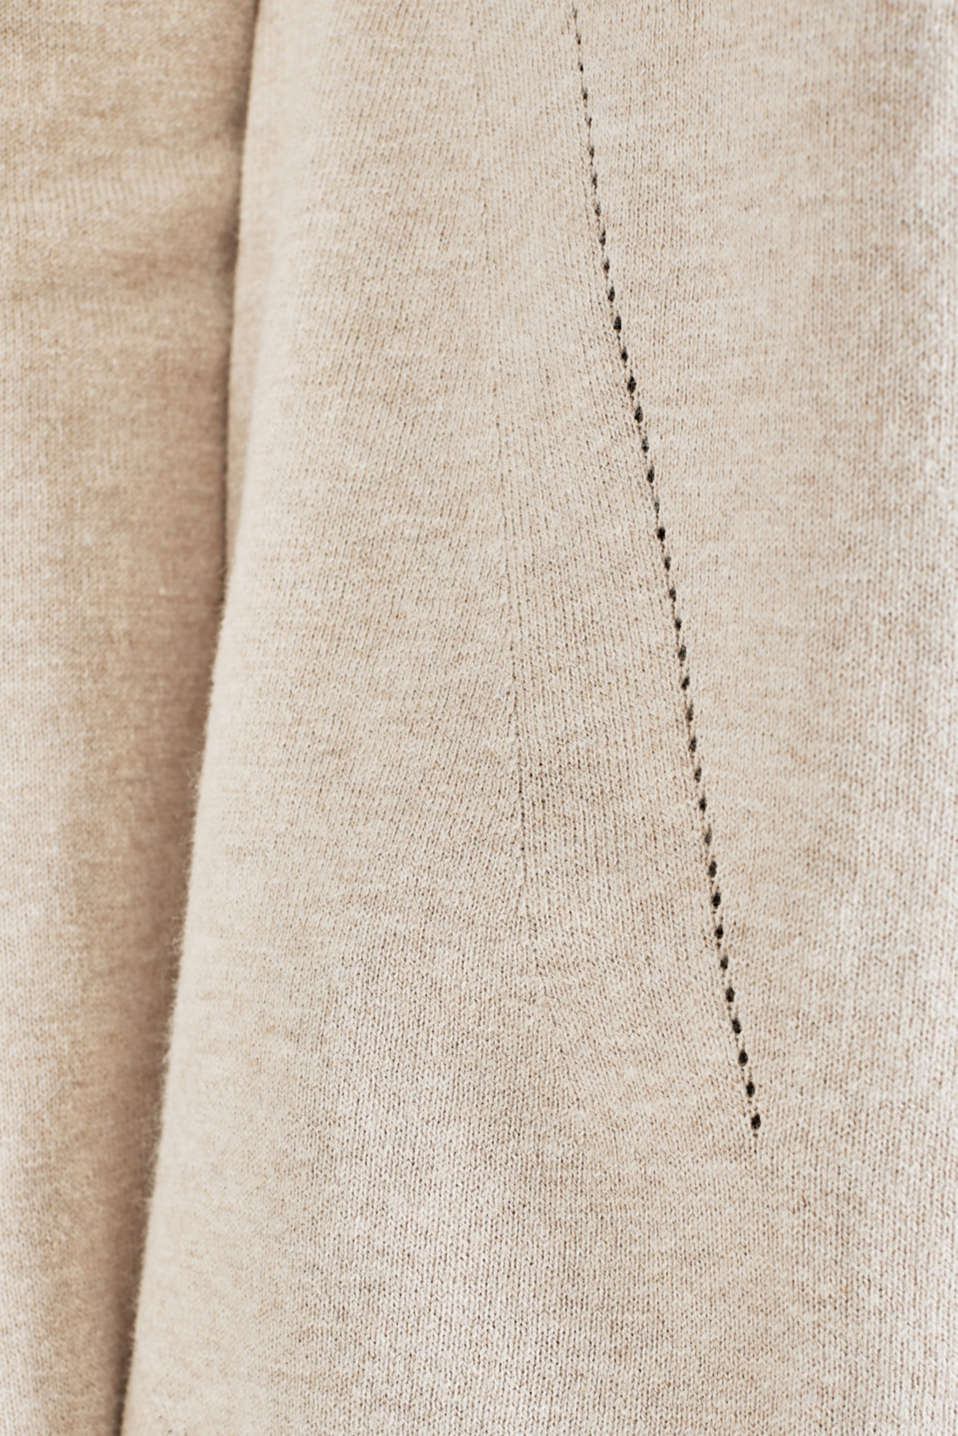 With linen: Jumper with open-work patterned details, BEIGE 5, detail image number 3